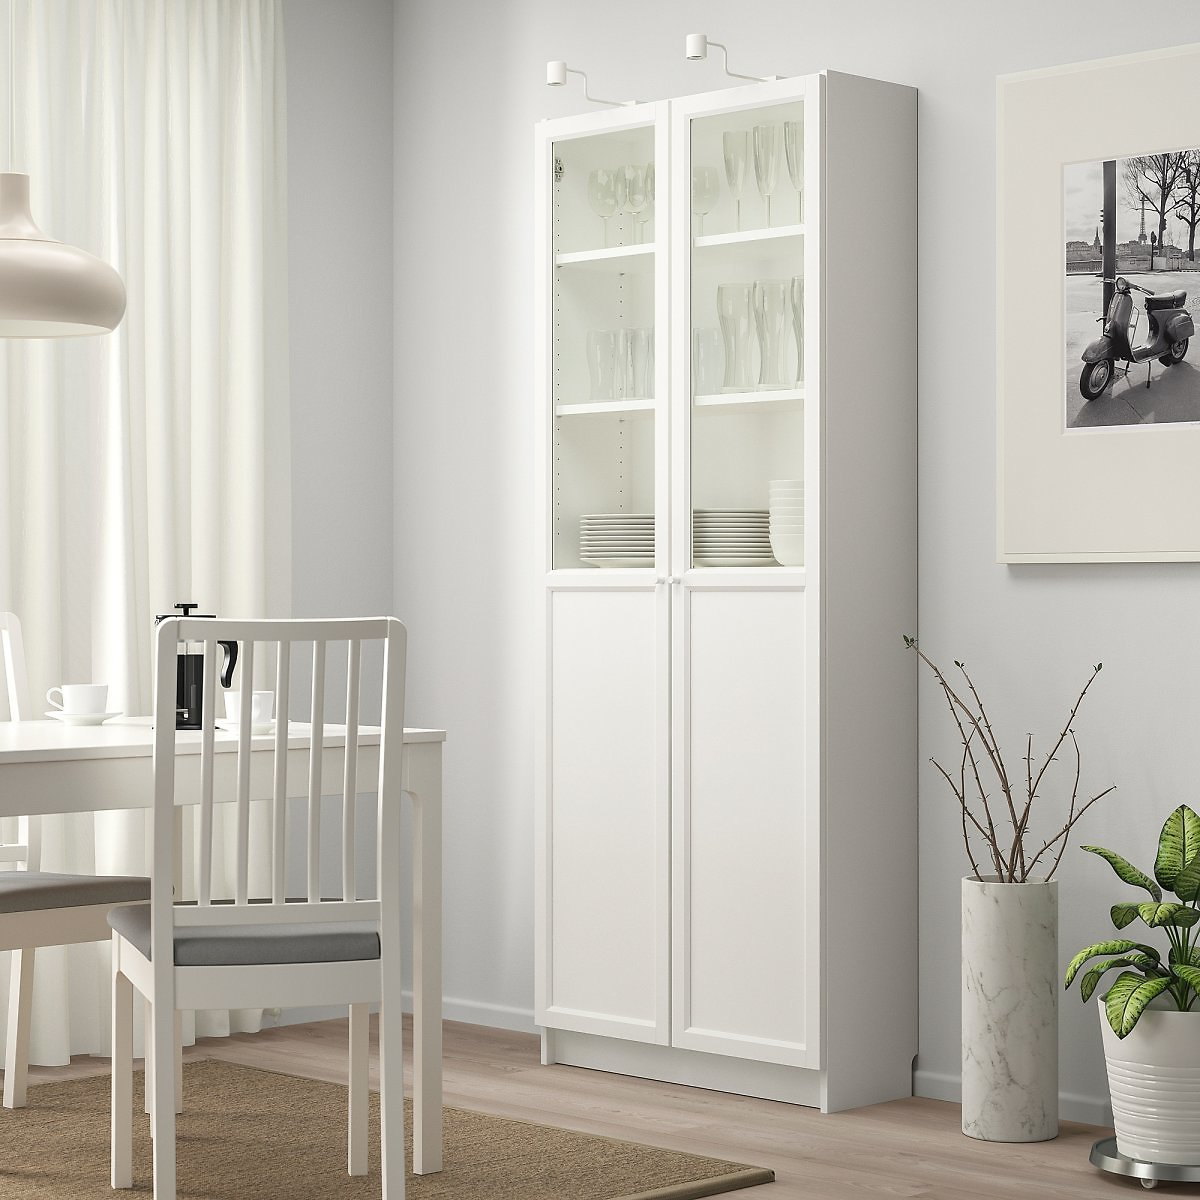 BILLY Bookcase with Panel/glass Doors, White31 1/2x11 3/4x79 1/2